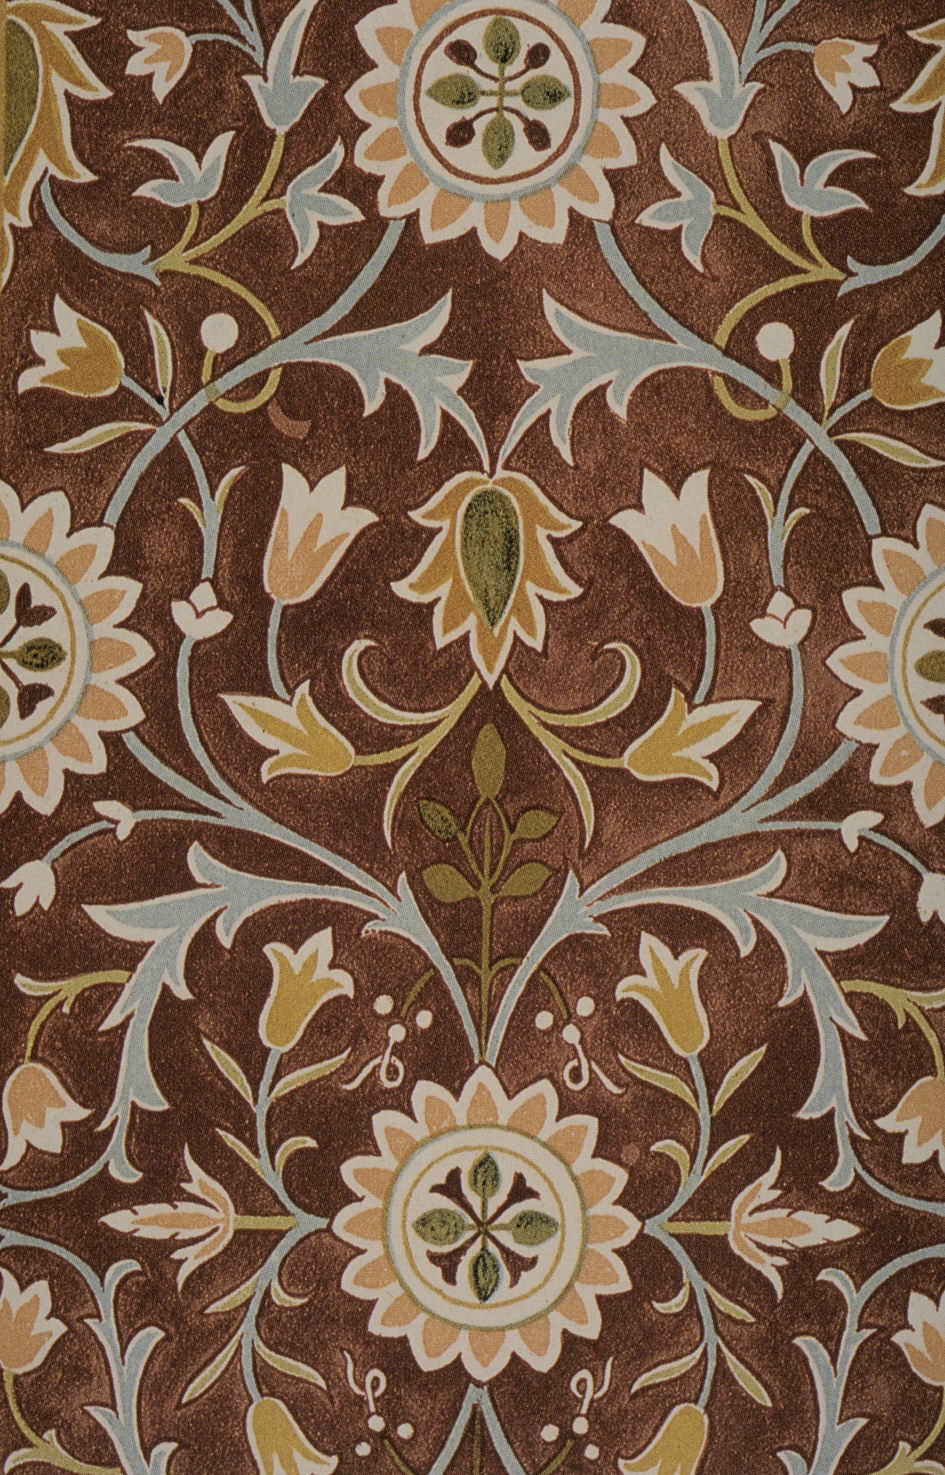 Carpet Design Delectable Filemorris Little Flower Carpet Design Detail  Wikimedia Commons Inspiration